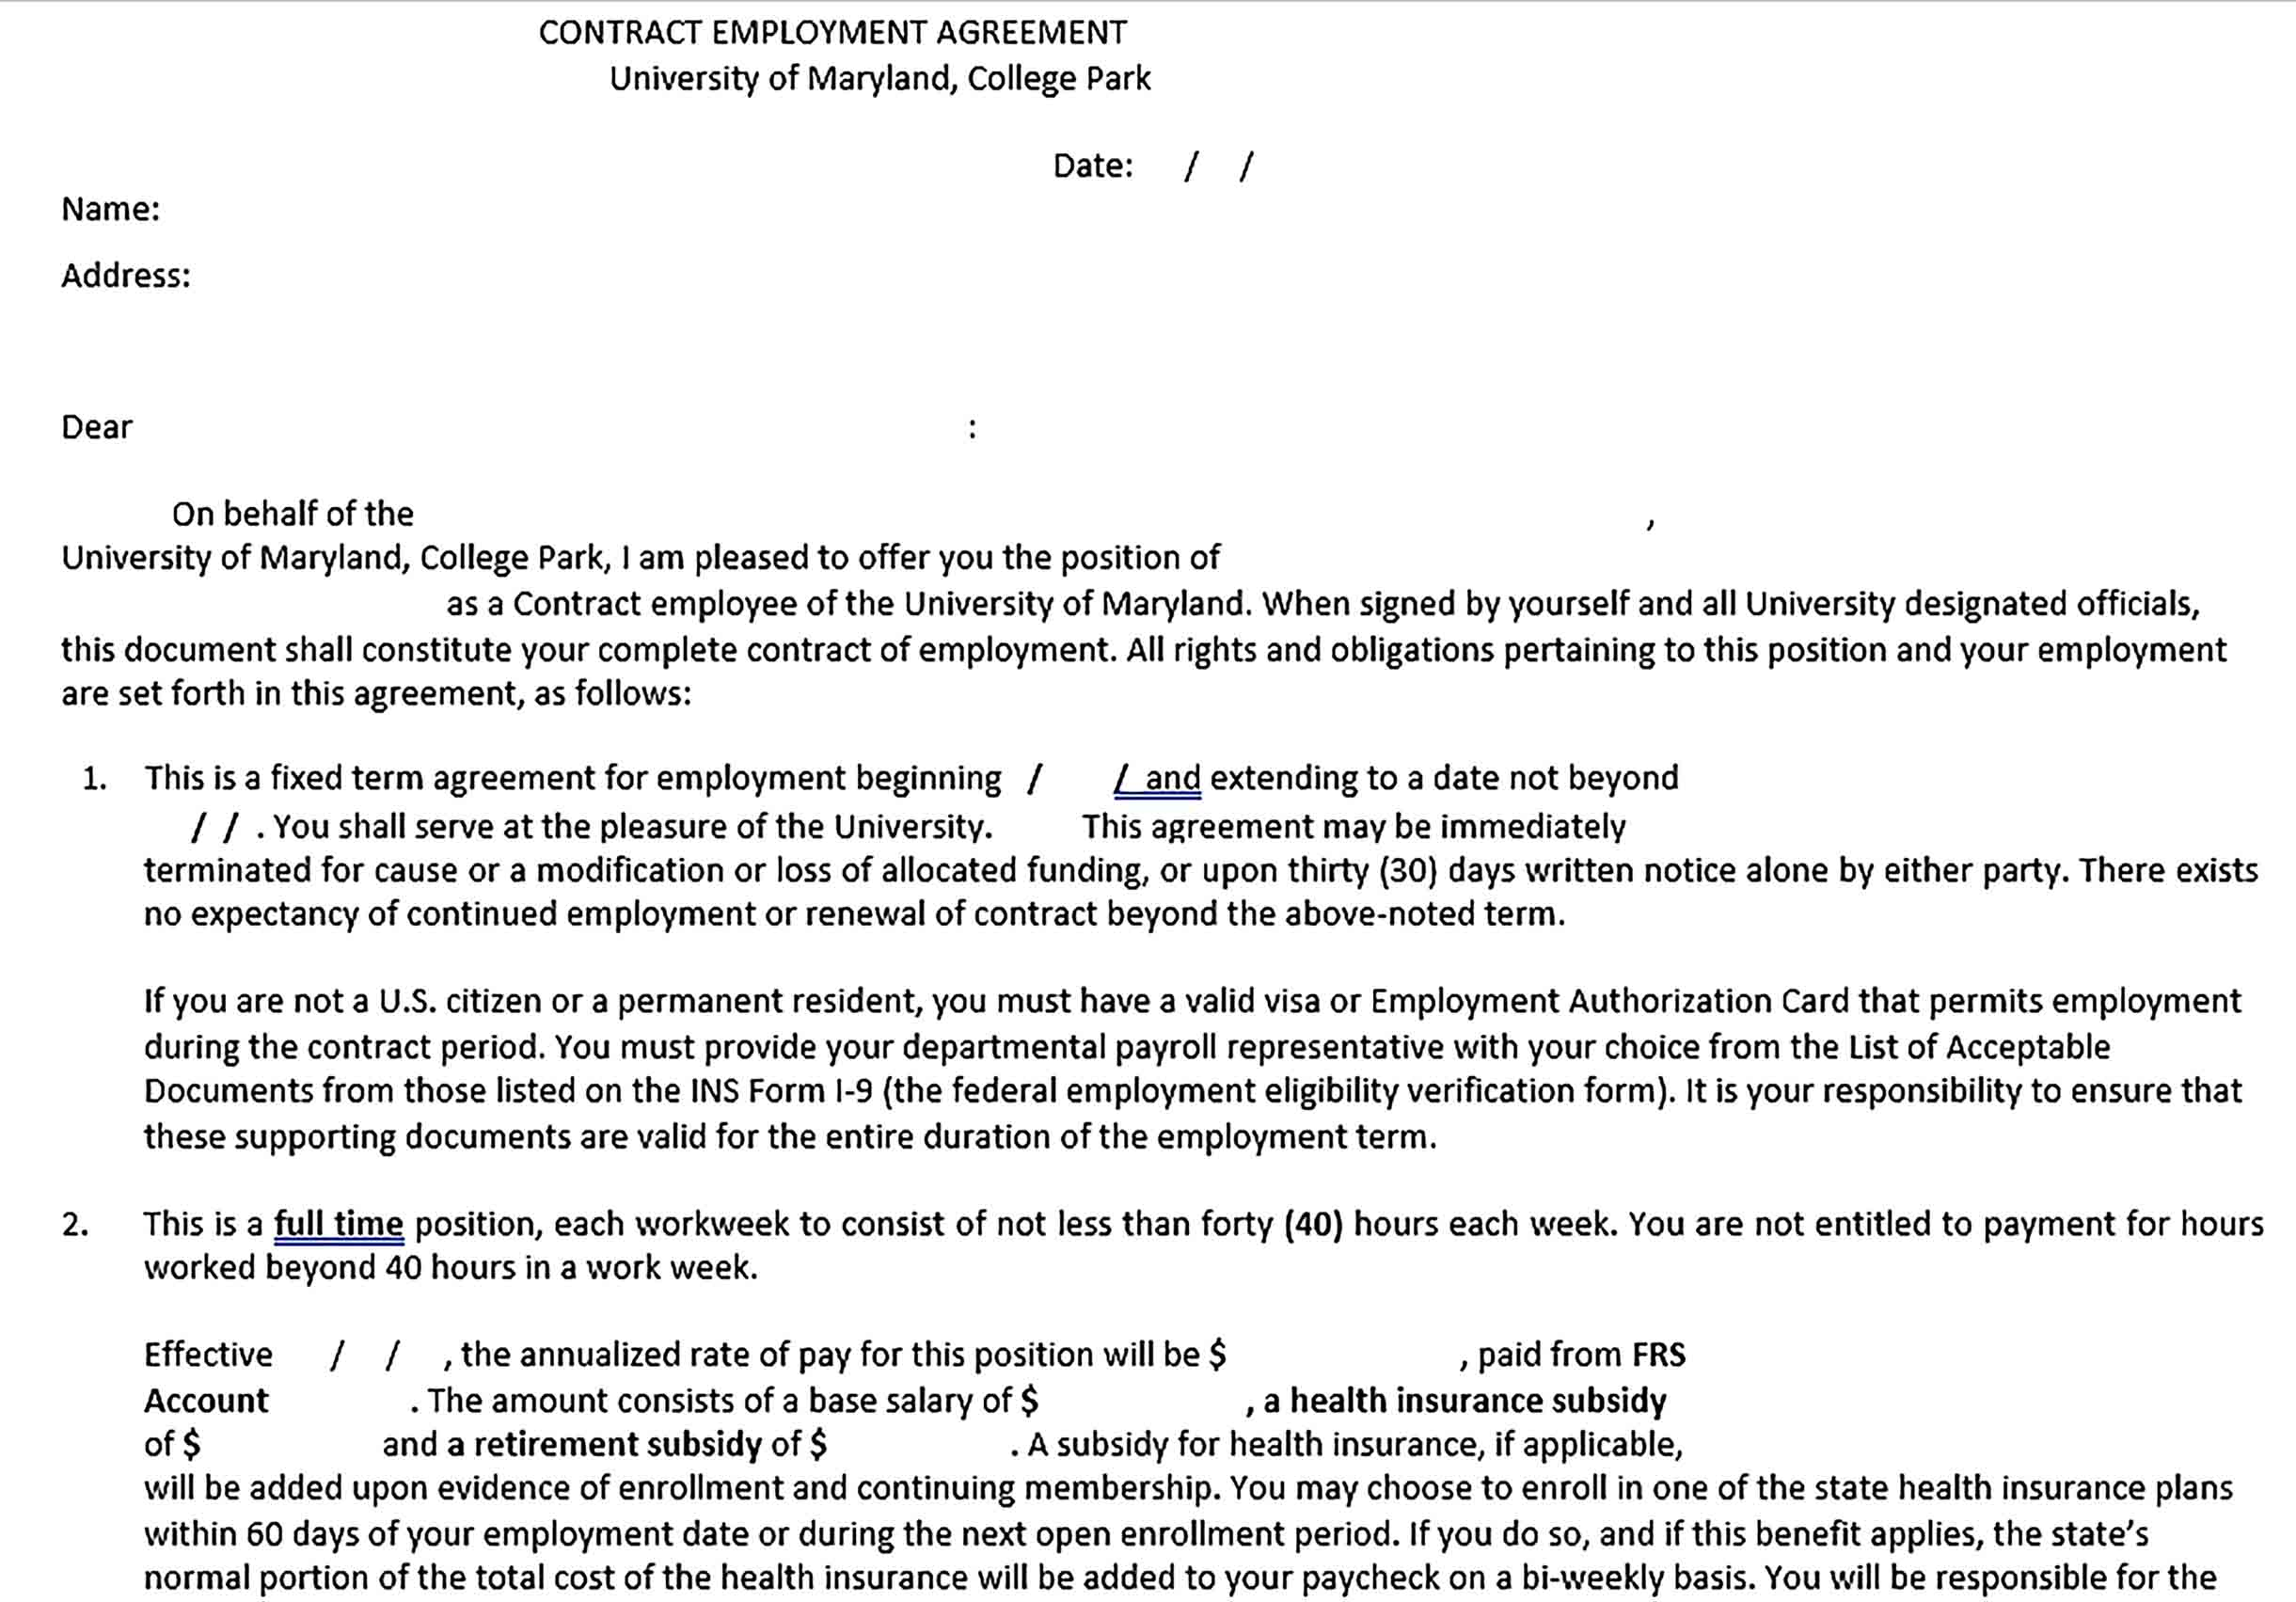 Sample Contract Employement Agreement